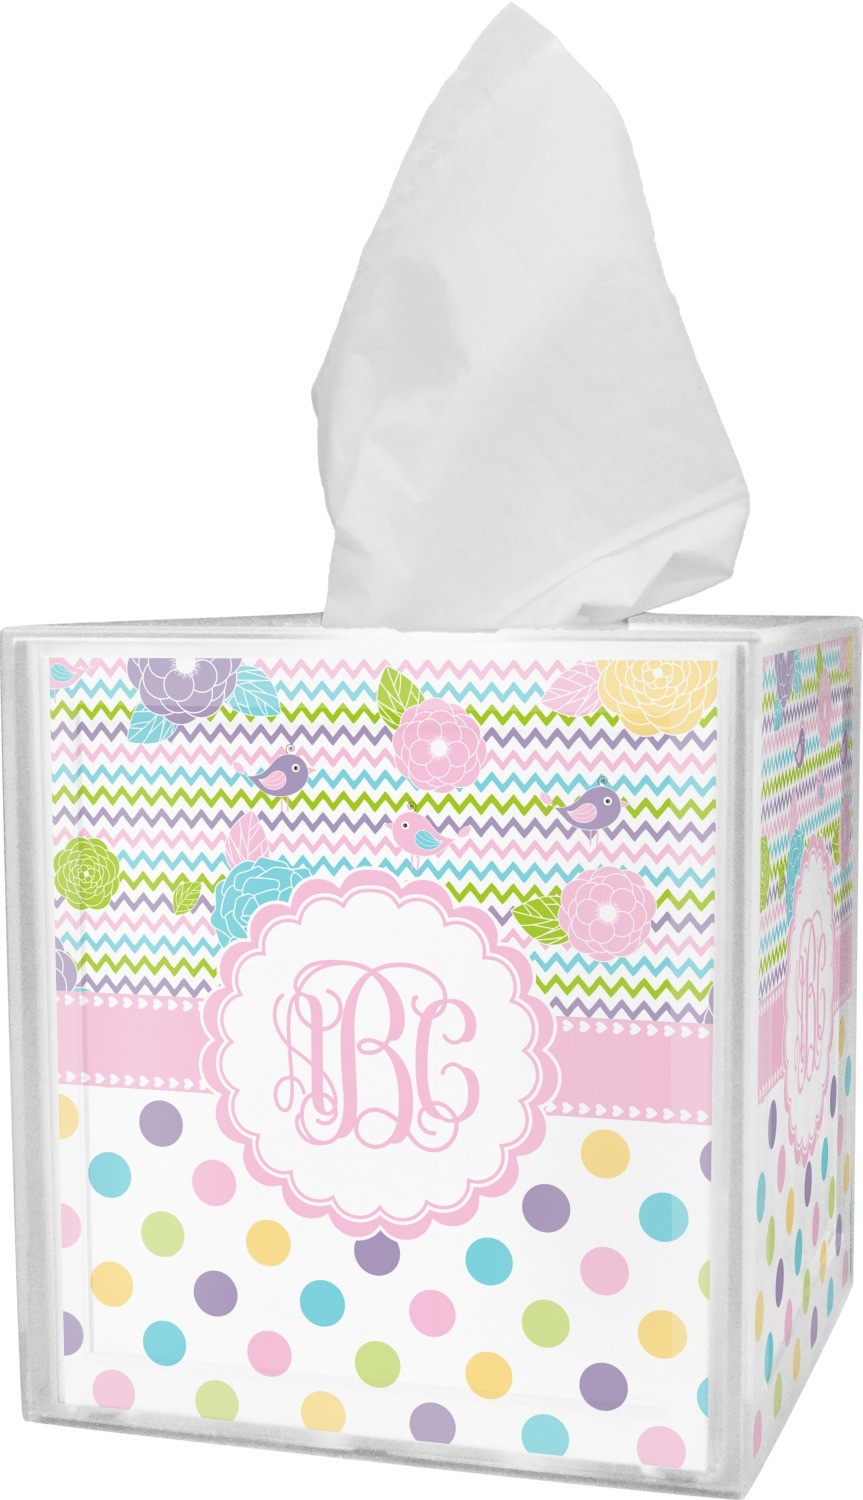 Girly Girl Tissue Box Cover (Personalized) - YouCustomizeIt